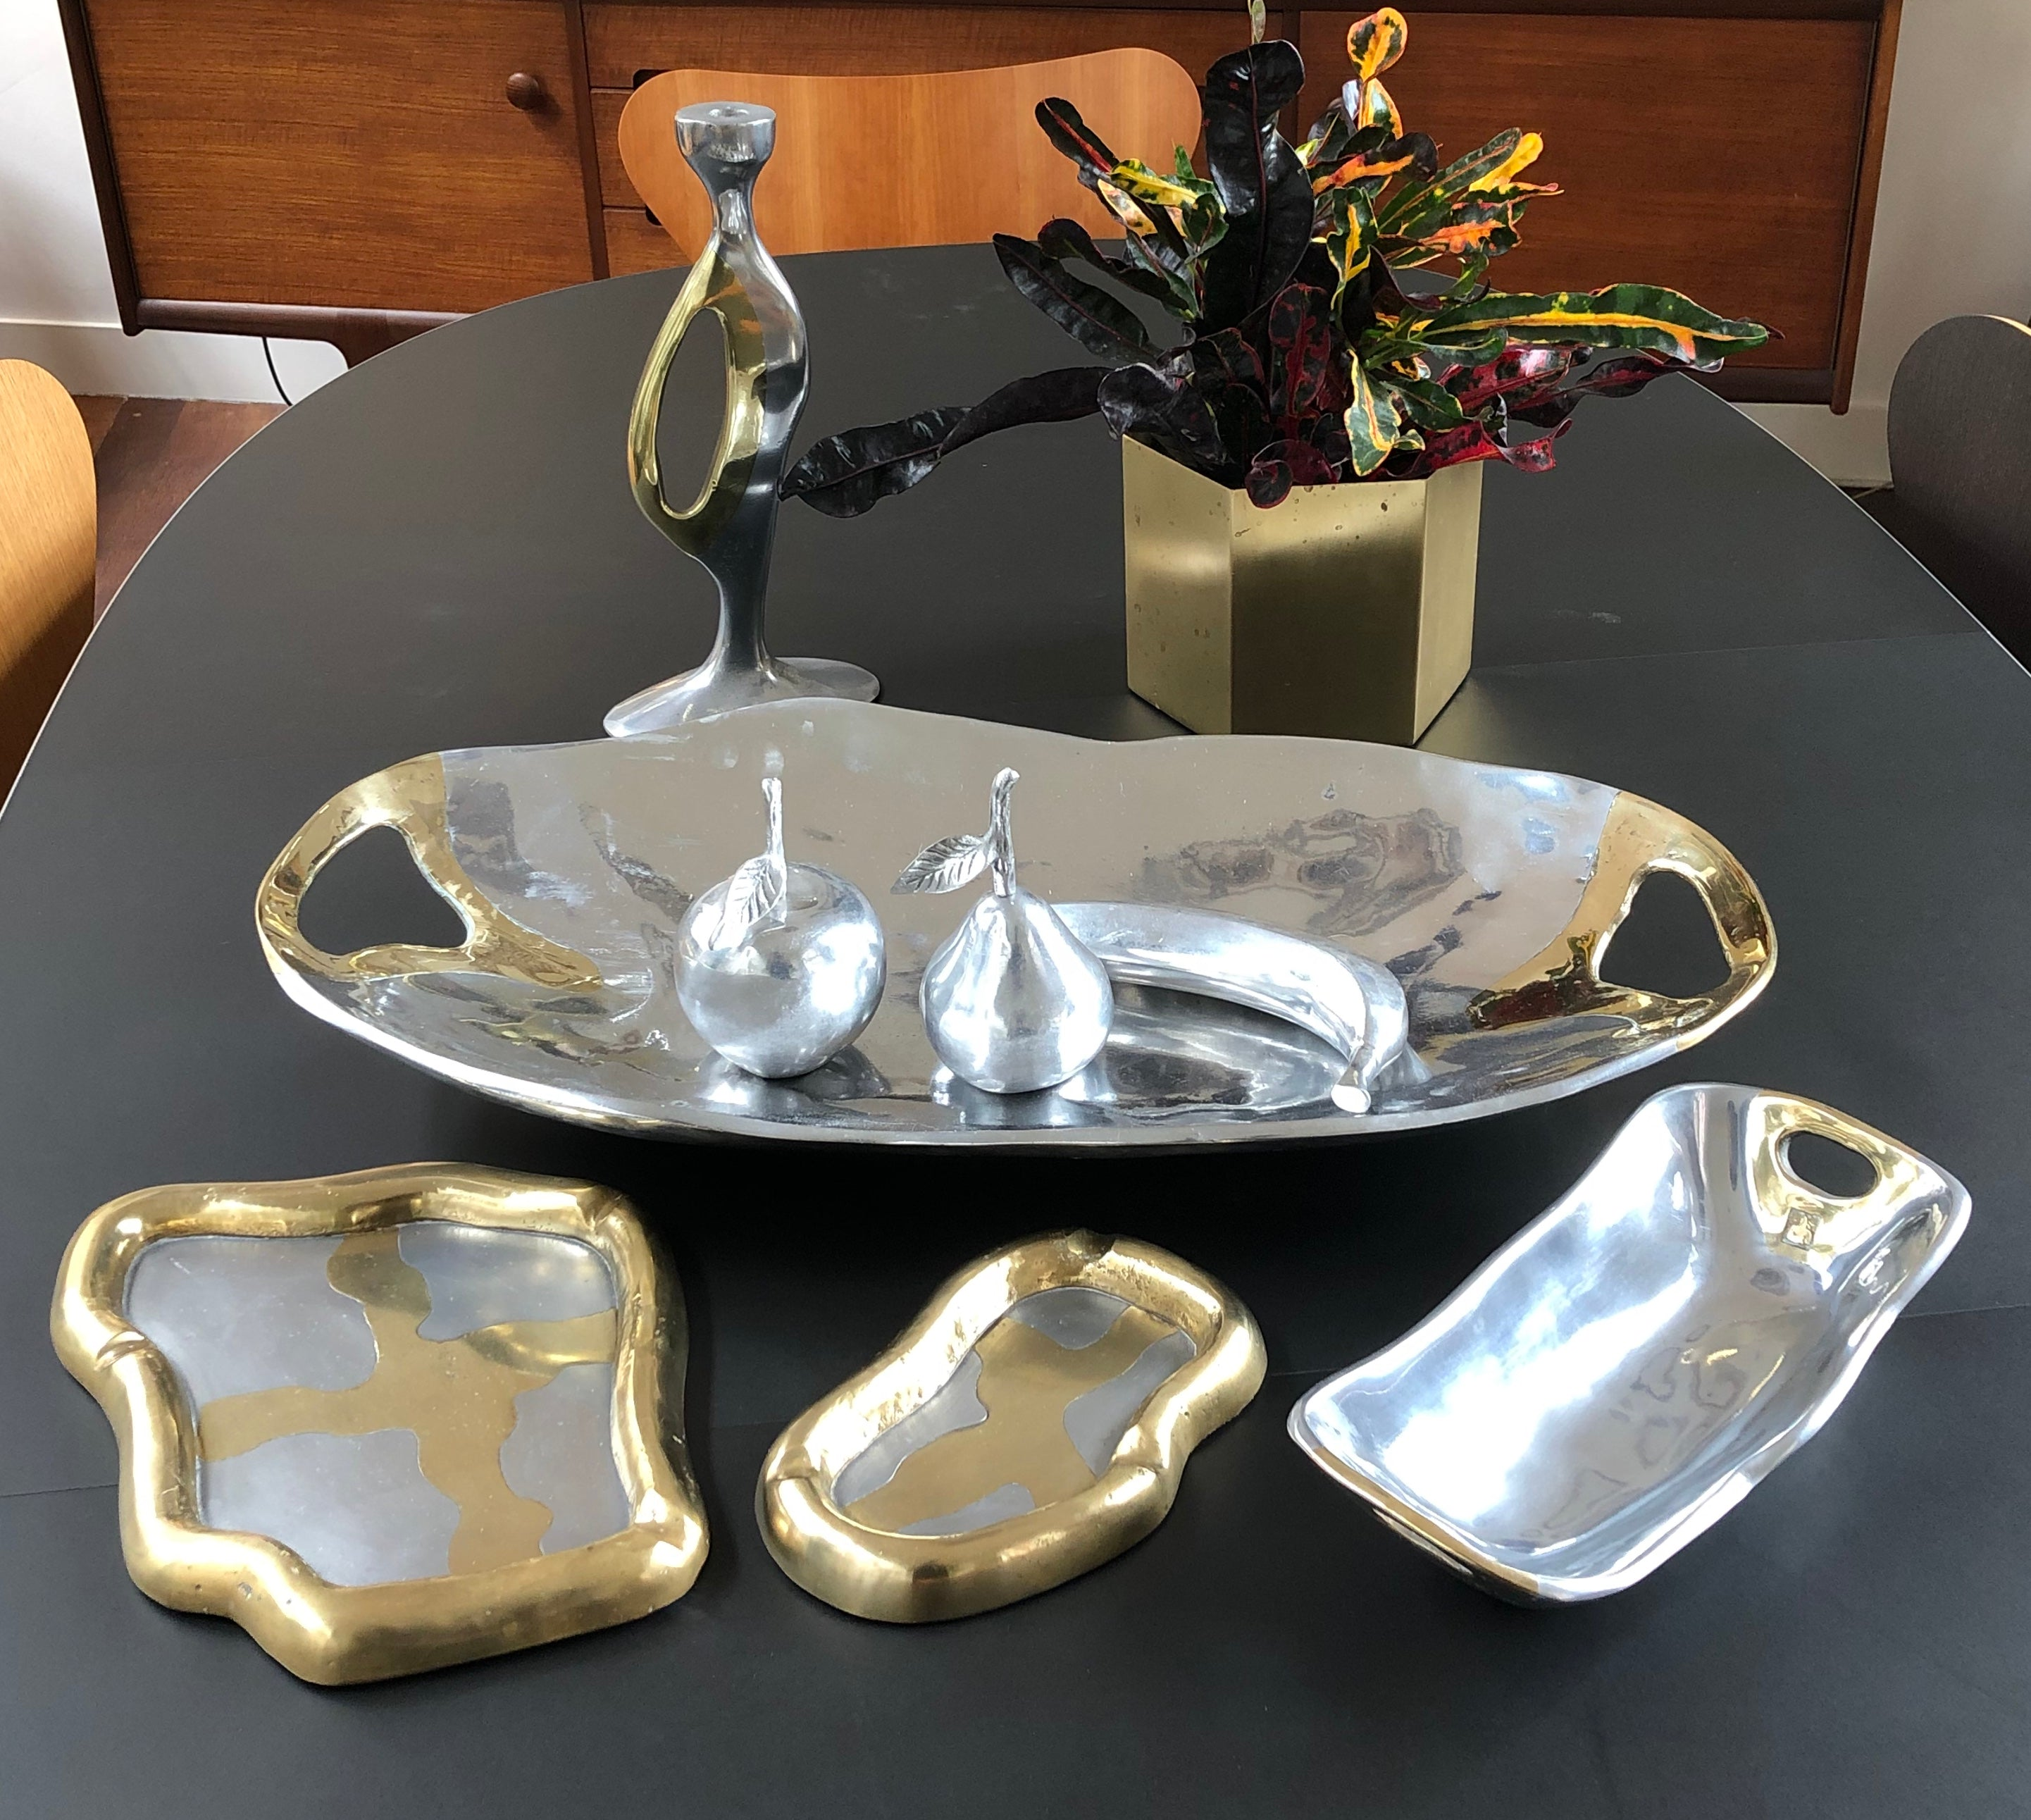 Aluminium and Brass Brutalist Style Tray by David Marshall (1970s) - Large